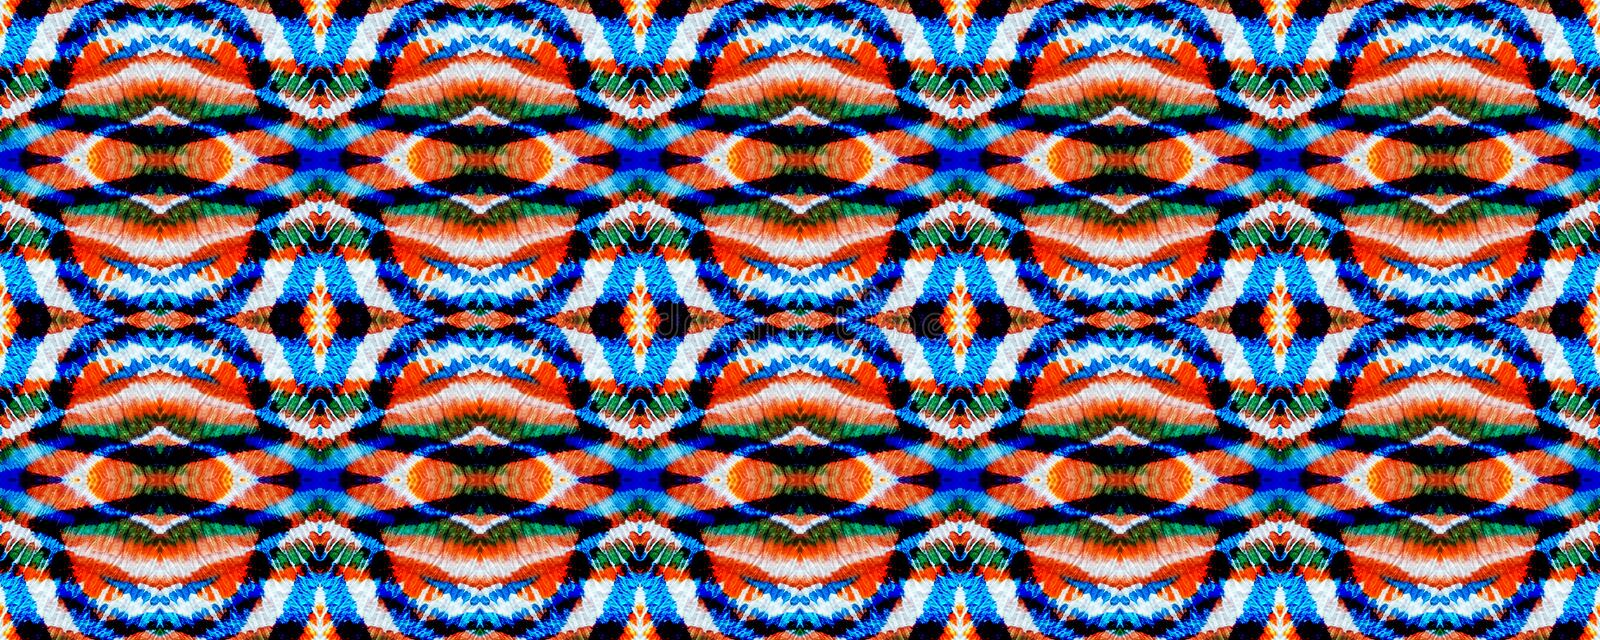 Ikat Seamless Pattern. Ogee Seamless Texture. Ikat Pattern. Watercolor Hand Drawn Textile. Creative Navajo Ikat Background. Psychedelic Rainbow Aztec Geometric royalty free illustration